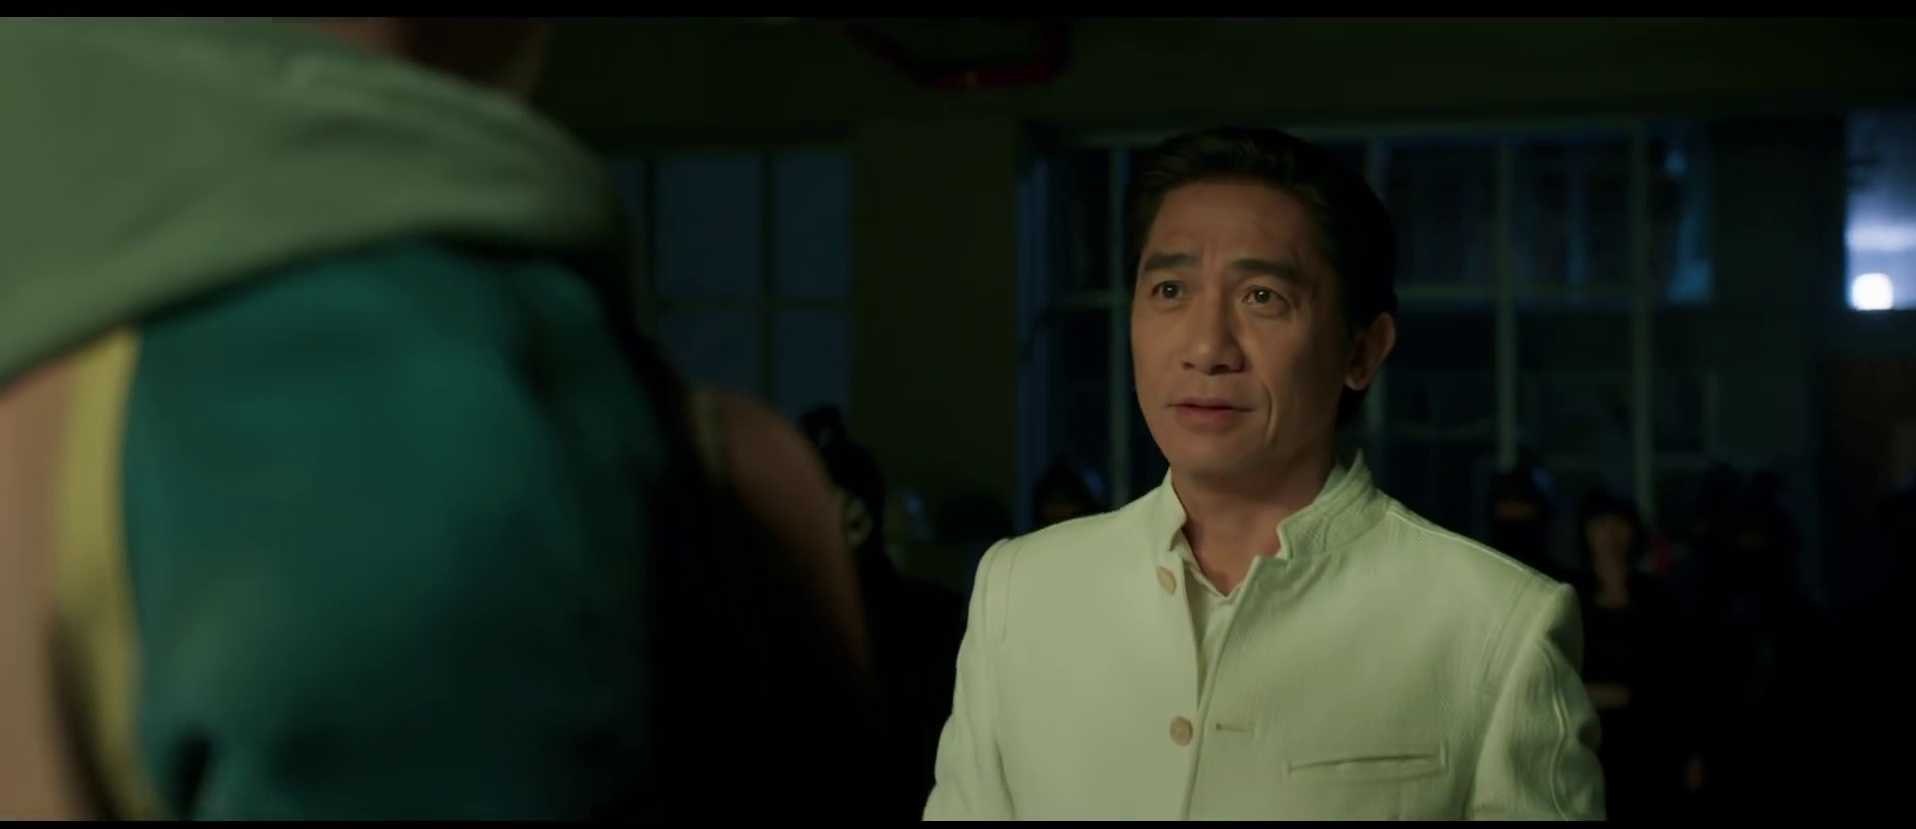 Shang-Chi and the Legend of the Ten Rings (2021) HDRip Dual Audio [Hindi -English] Movie Download